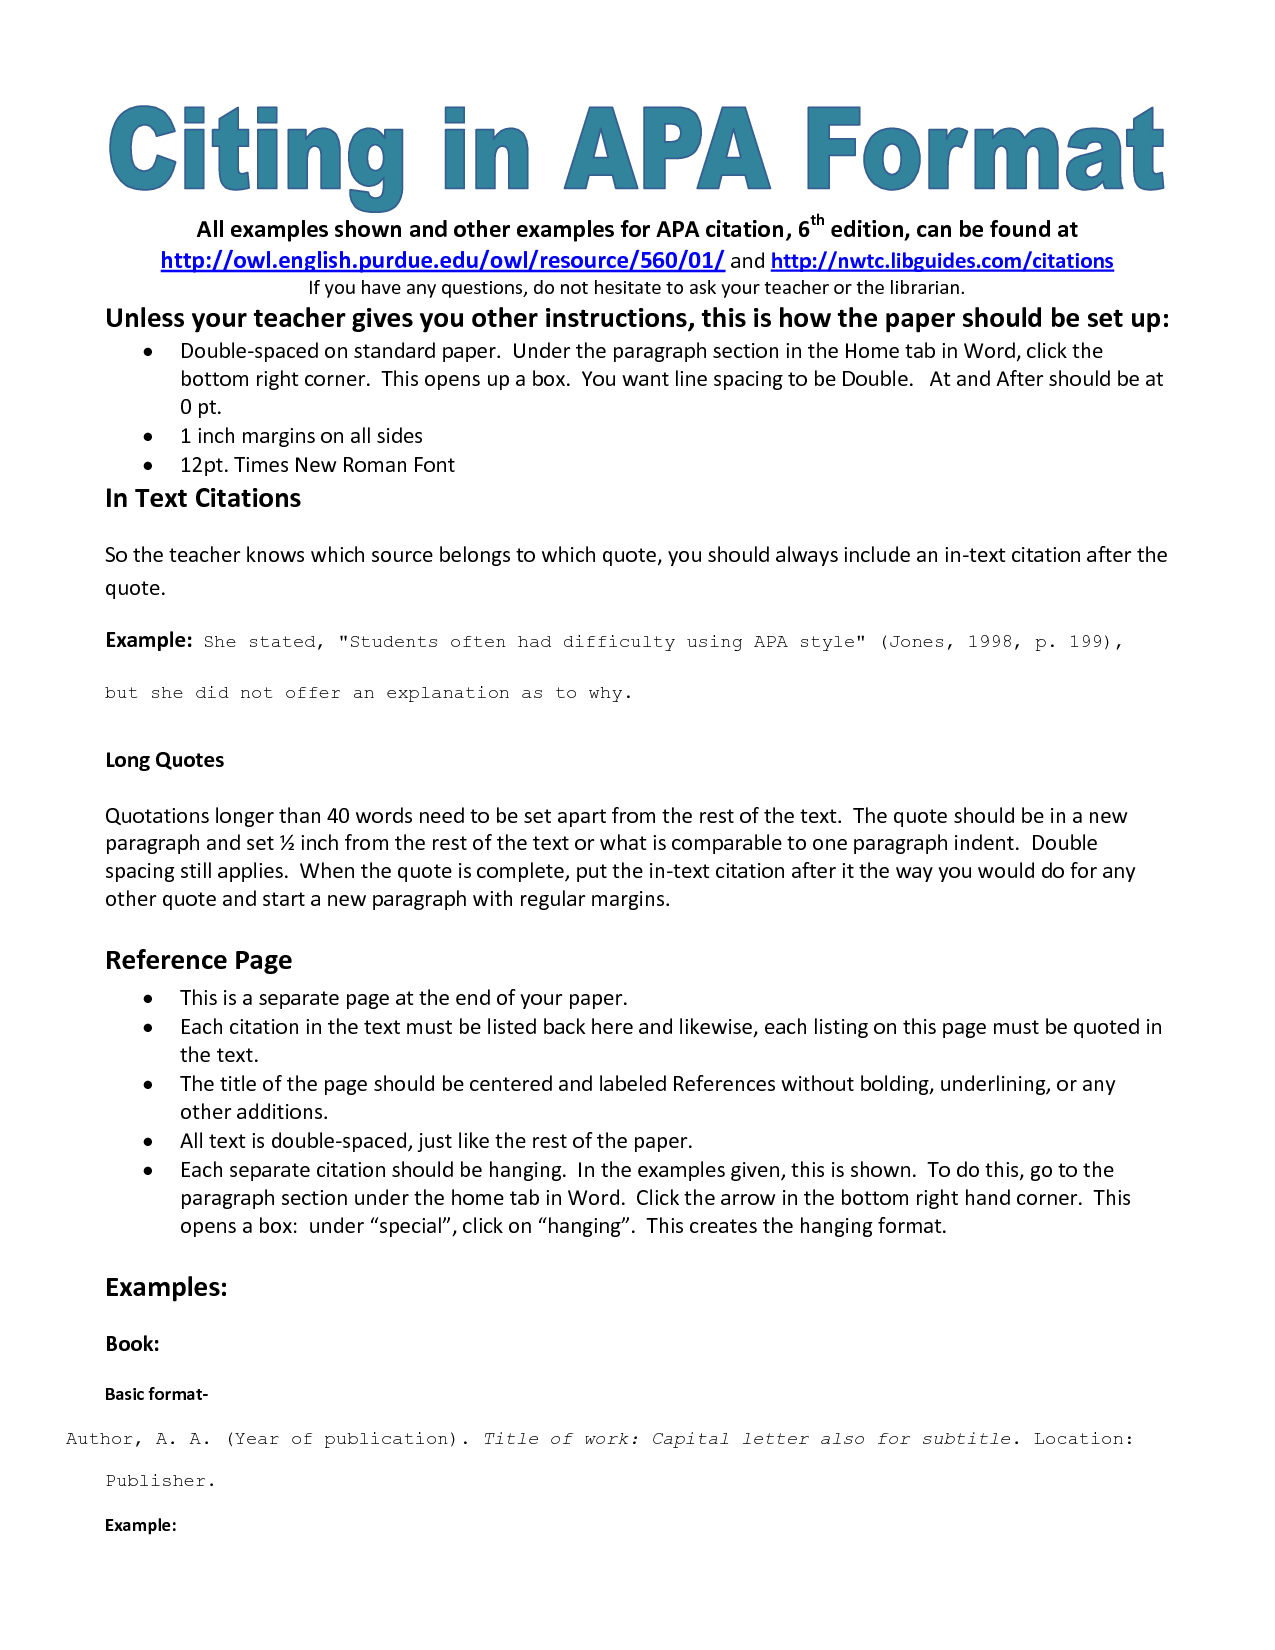 010 Apa Format Style For Research Paper Unusual Sample Papers In Writing Citing Full